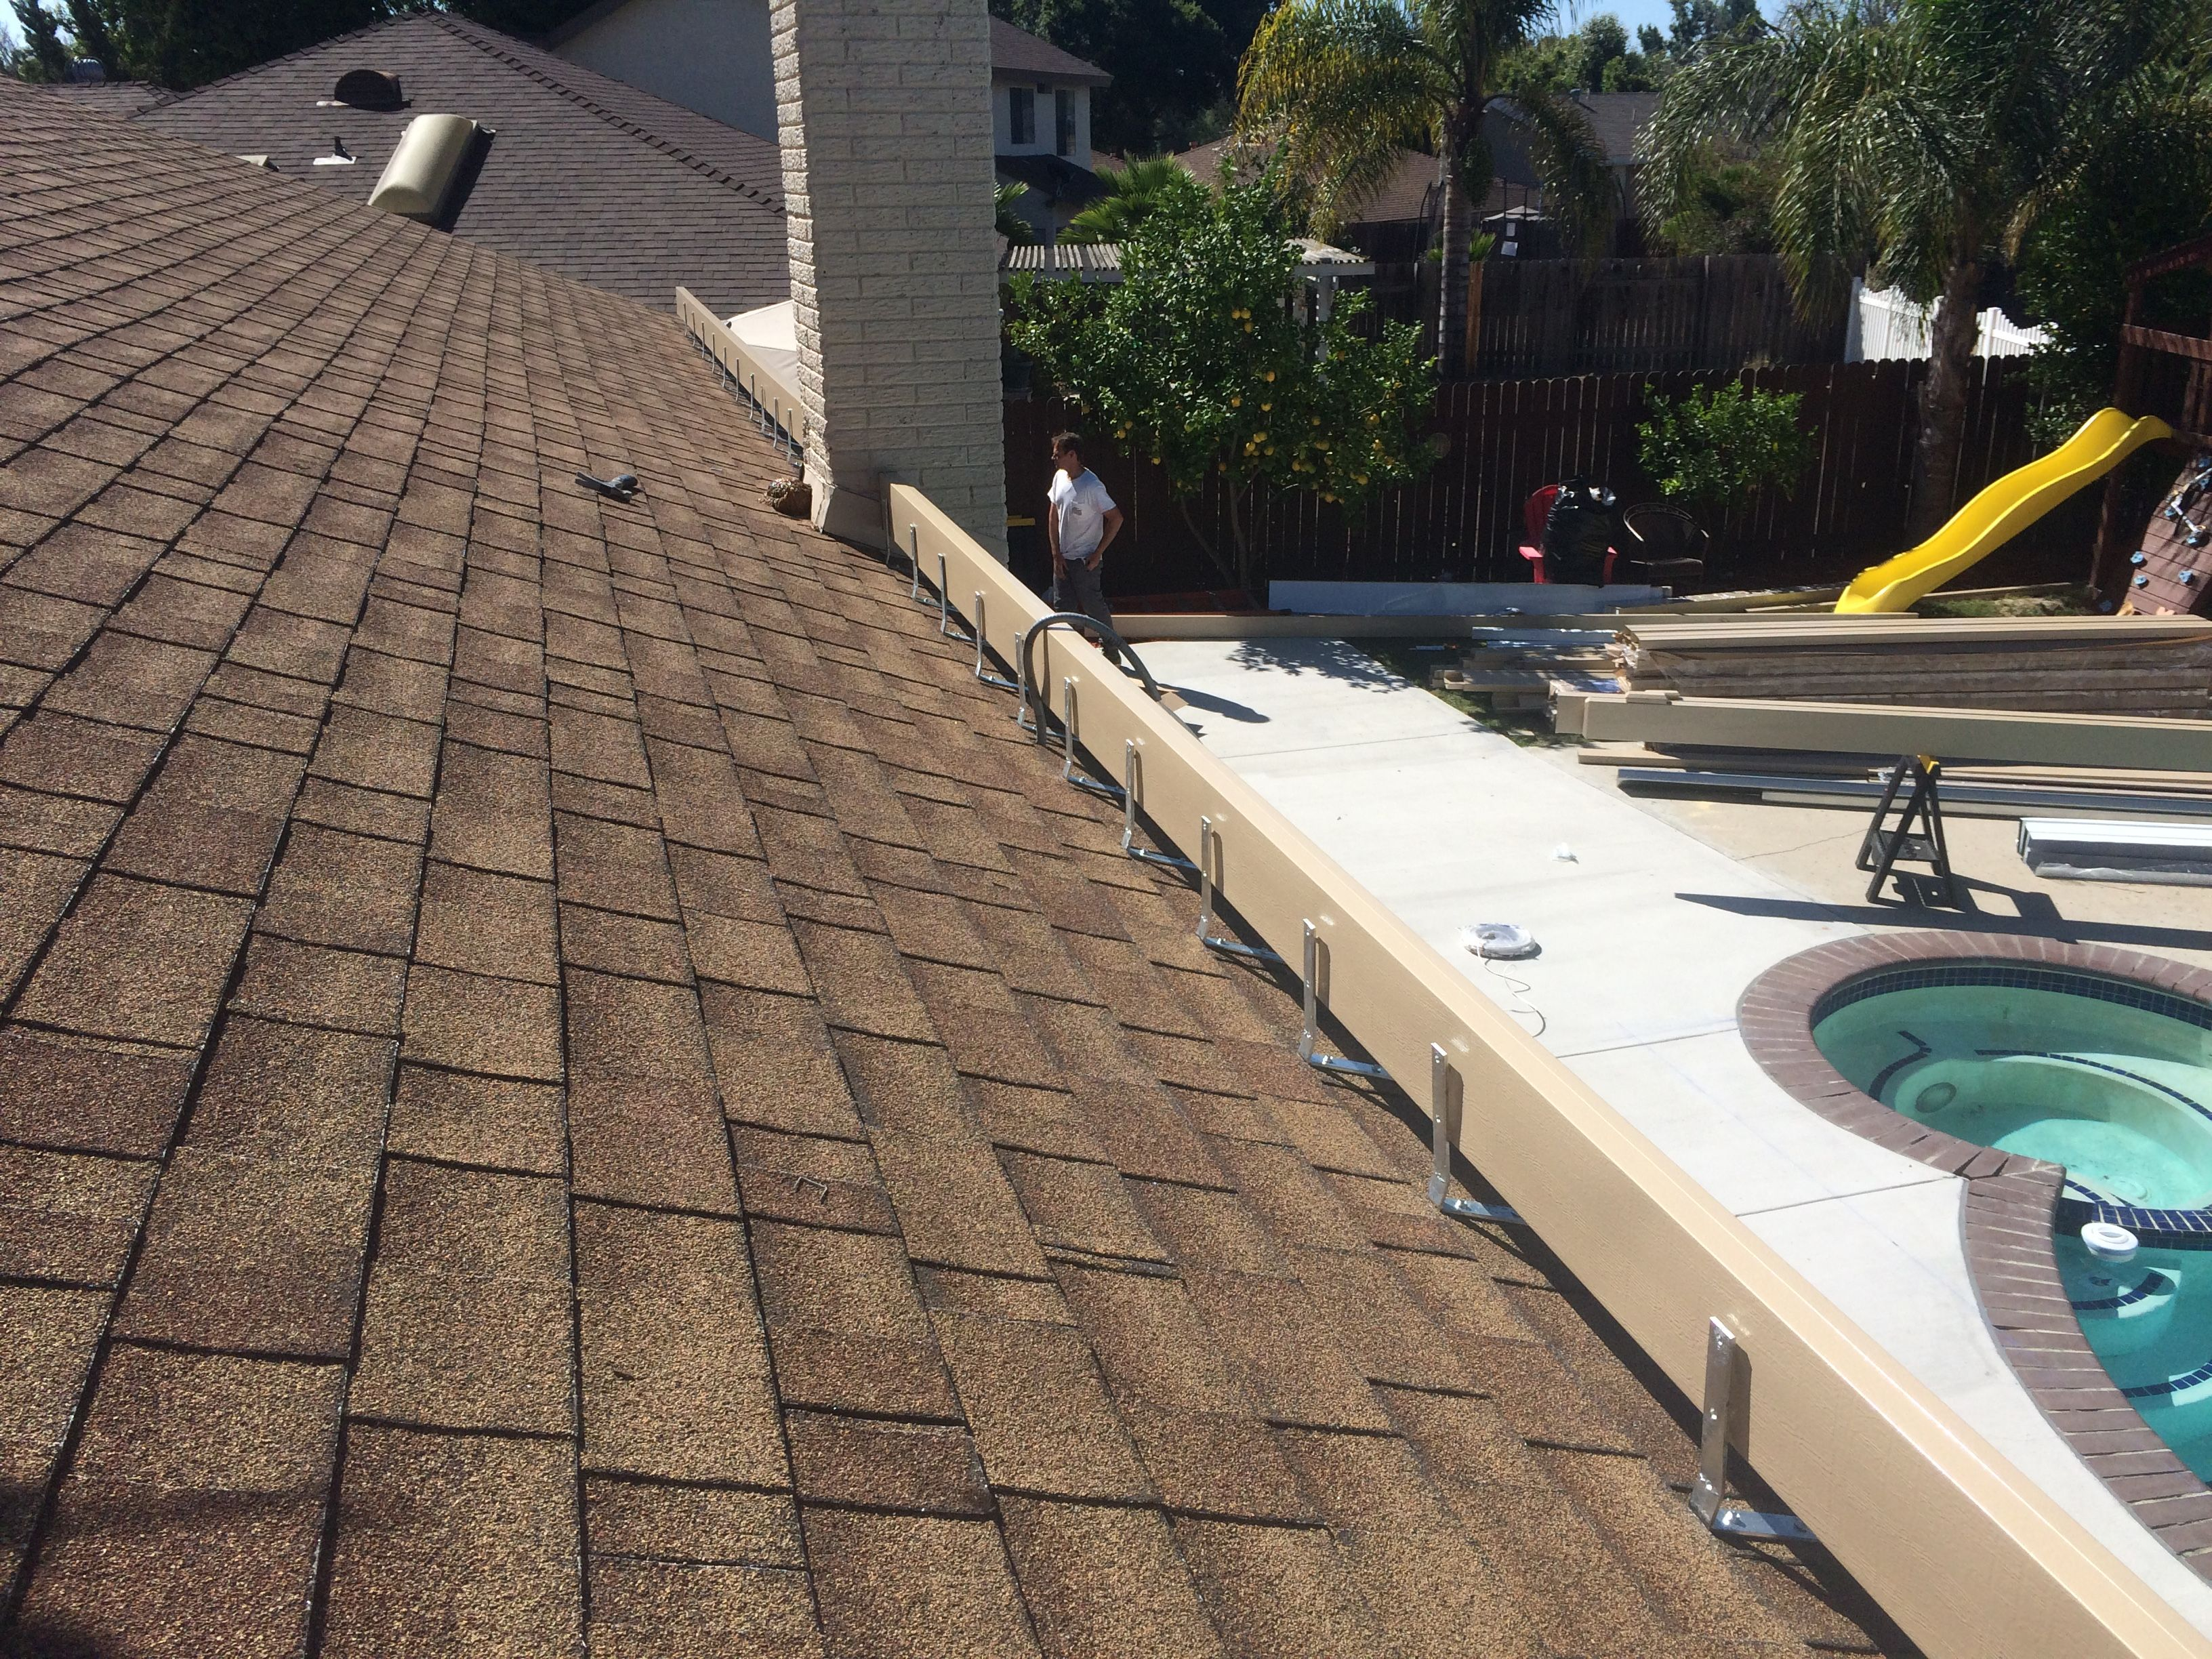 A Roof Ledger Can Be Build To Mount Alumawood Patio Covers To Get A Little More Height Out Of You Patio This Is A Good Idea Yo Patio Kits Covered Patio